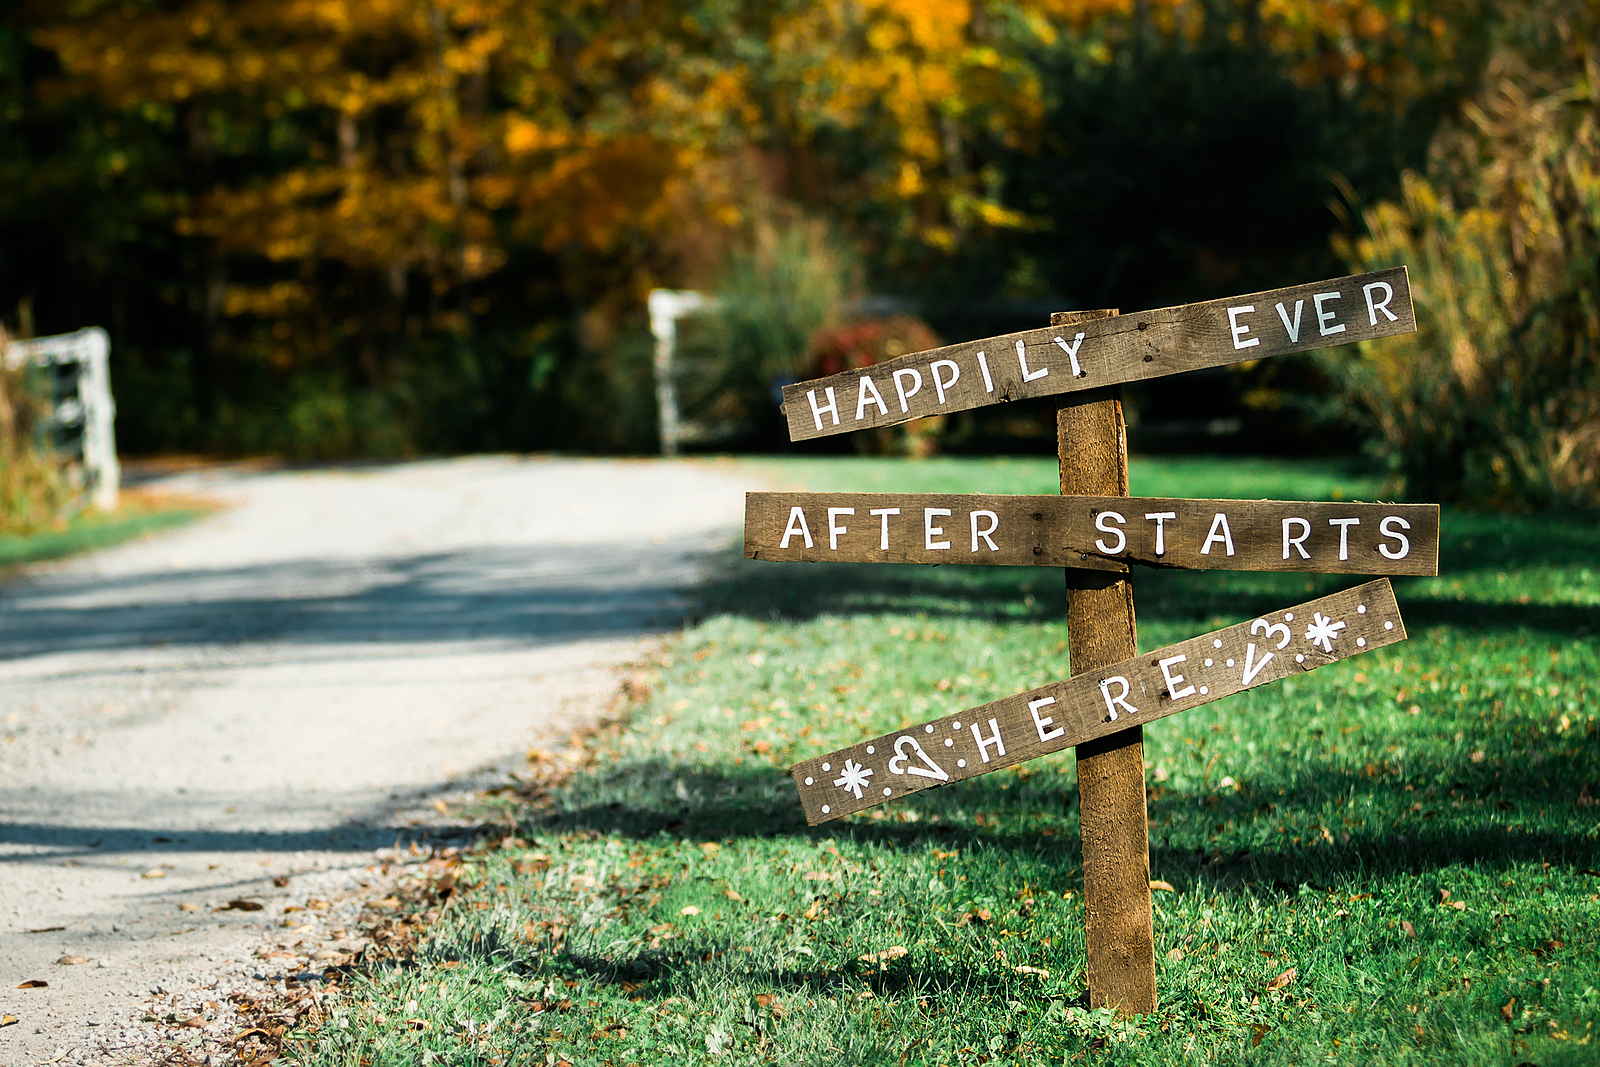 Wedding sign says happily ever after starts here and a road leads to the wedding venue.